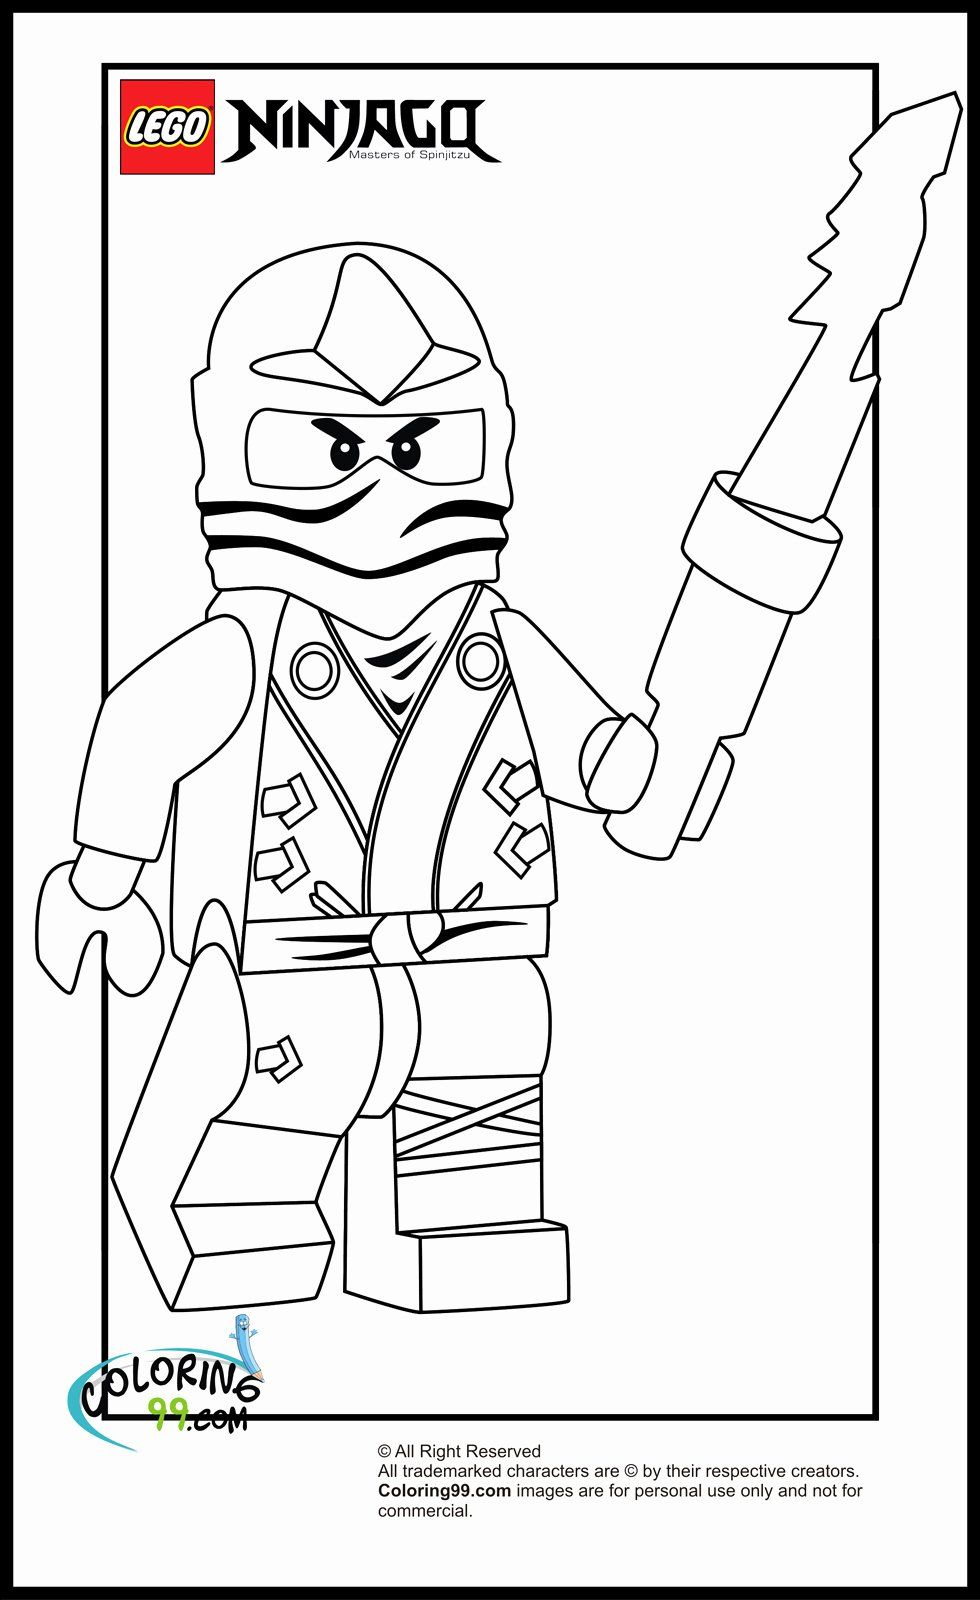 Kai Ninjago Coloring Page Elegant Lego Ninjago Zane Coloring Pages Ninjago Coloring Pages Superhero Coloring Pages Lego Coloring Pages